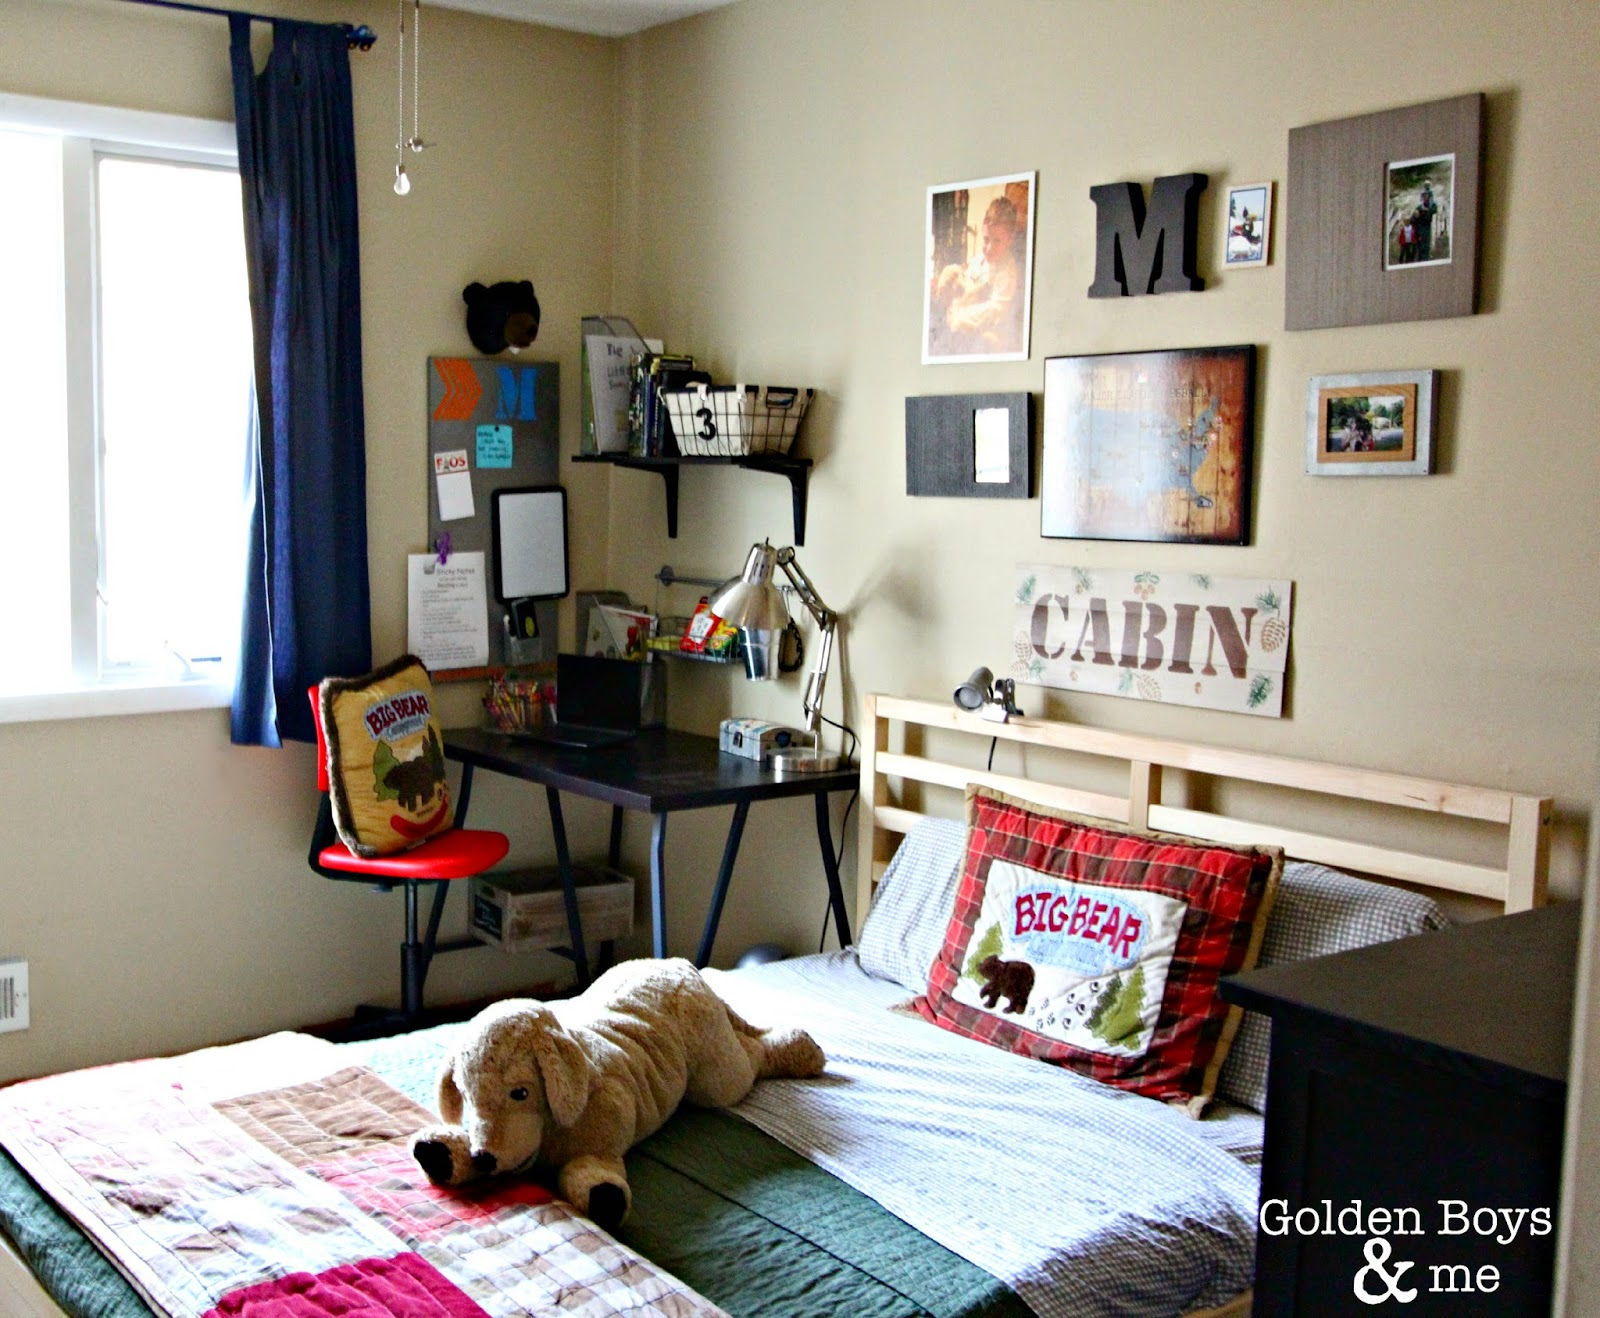 14 Year Room Ideas: Golden Boys And Me: October 2014